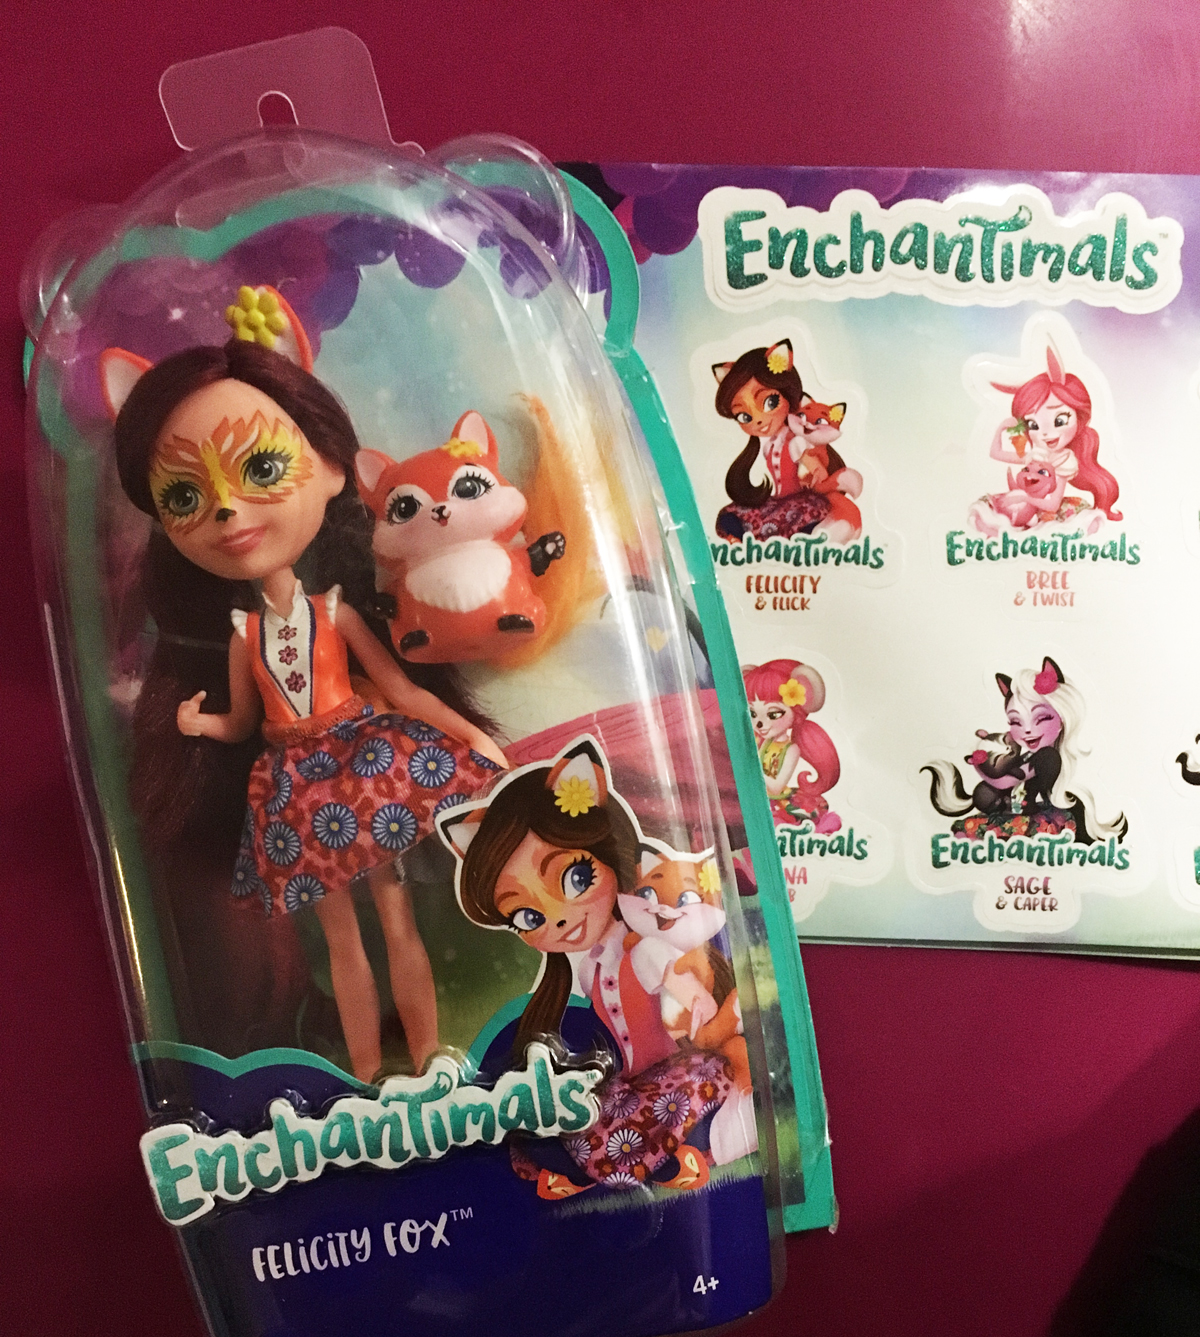 Muñecas Enchantimals - Fiesta Mattell